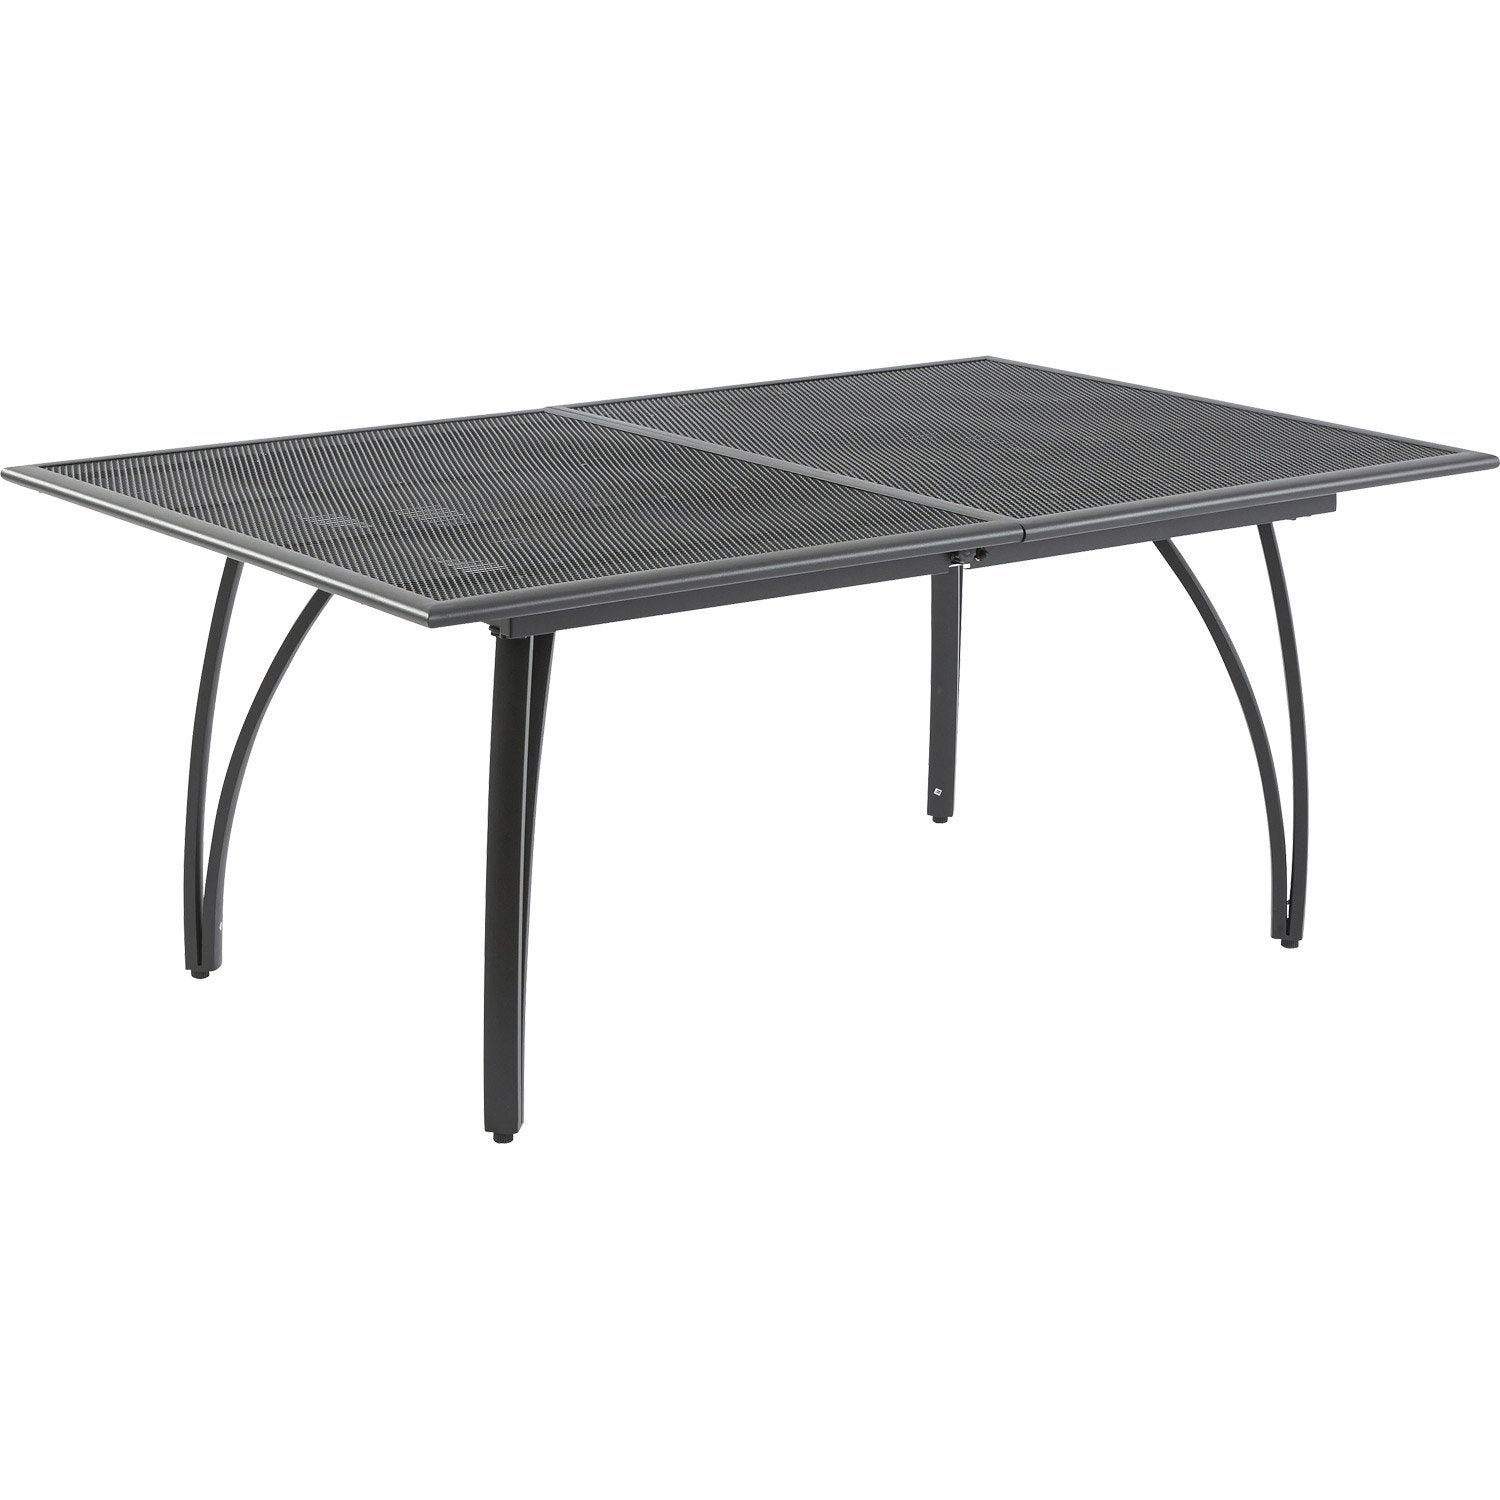 Table de jardin rectangulaire gris 10 personnes leroy merlin for Table exterieur 10 personnes